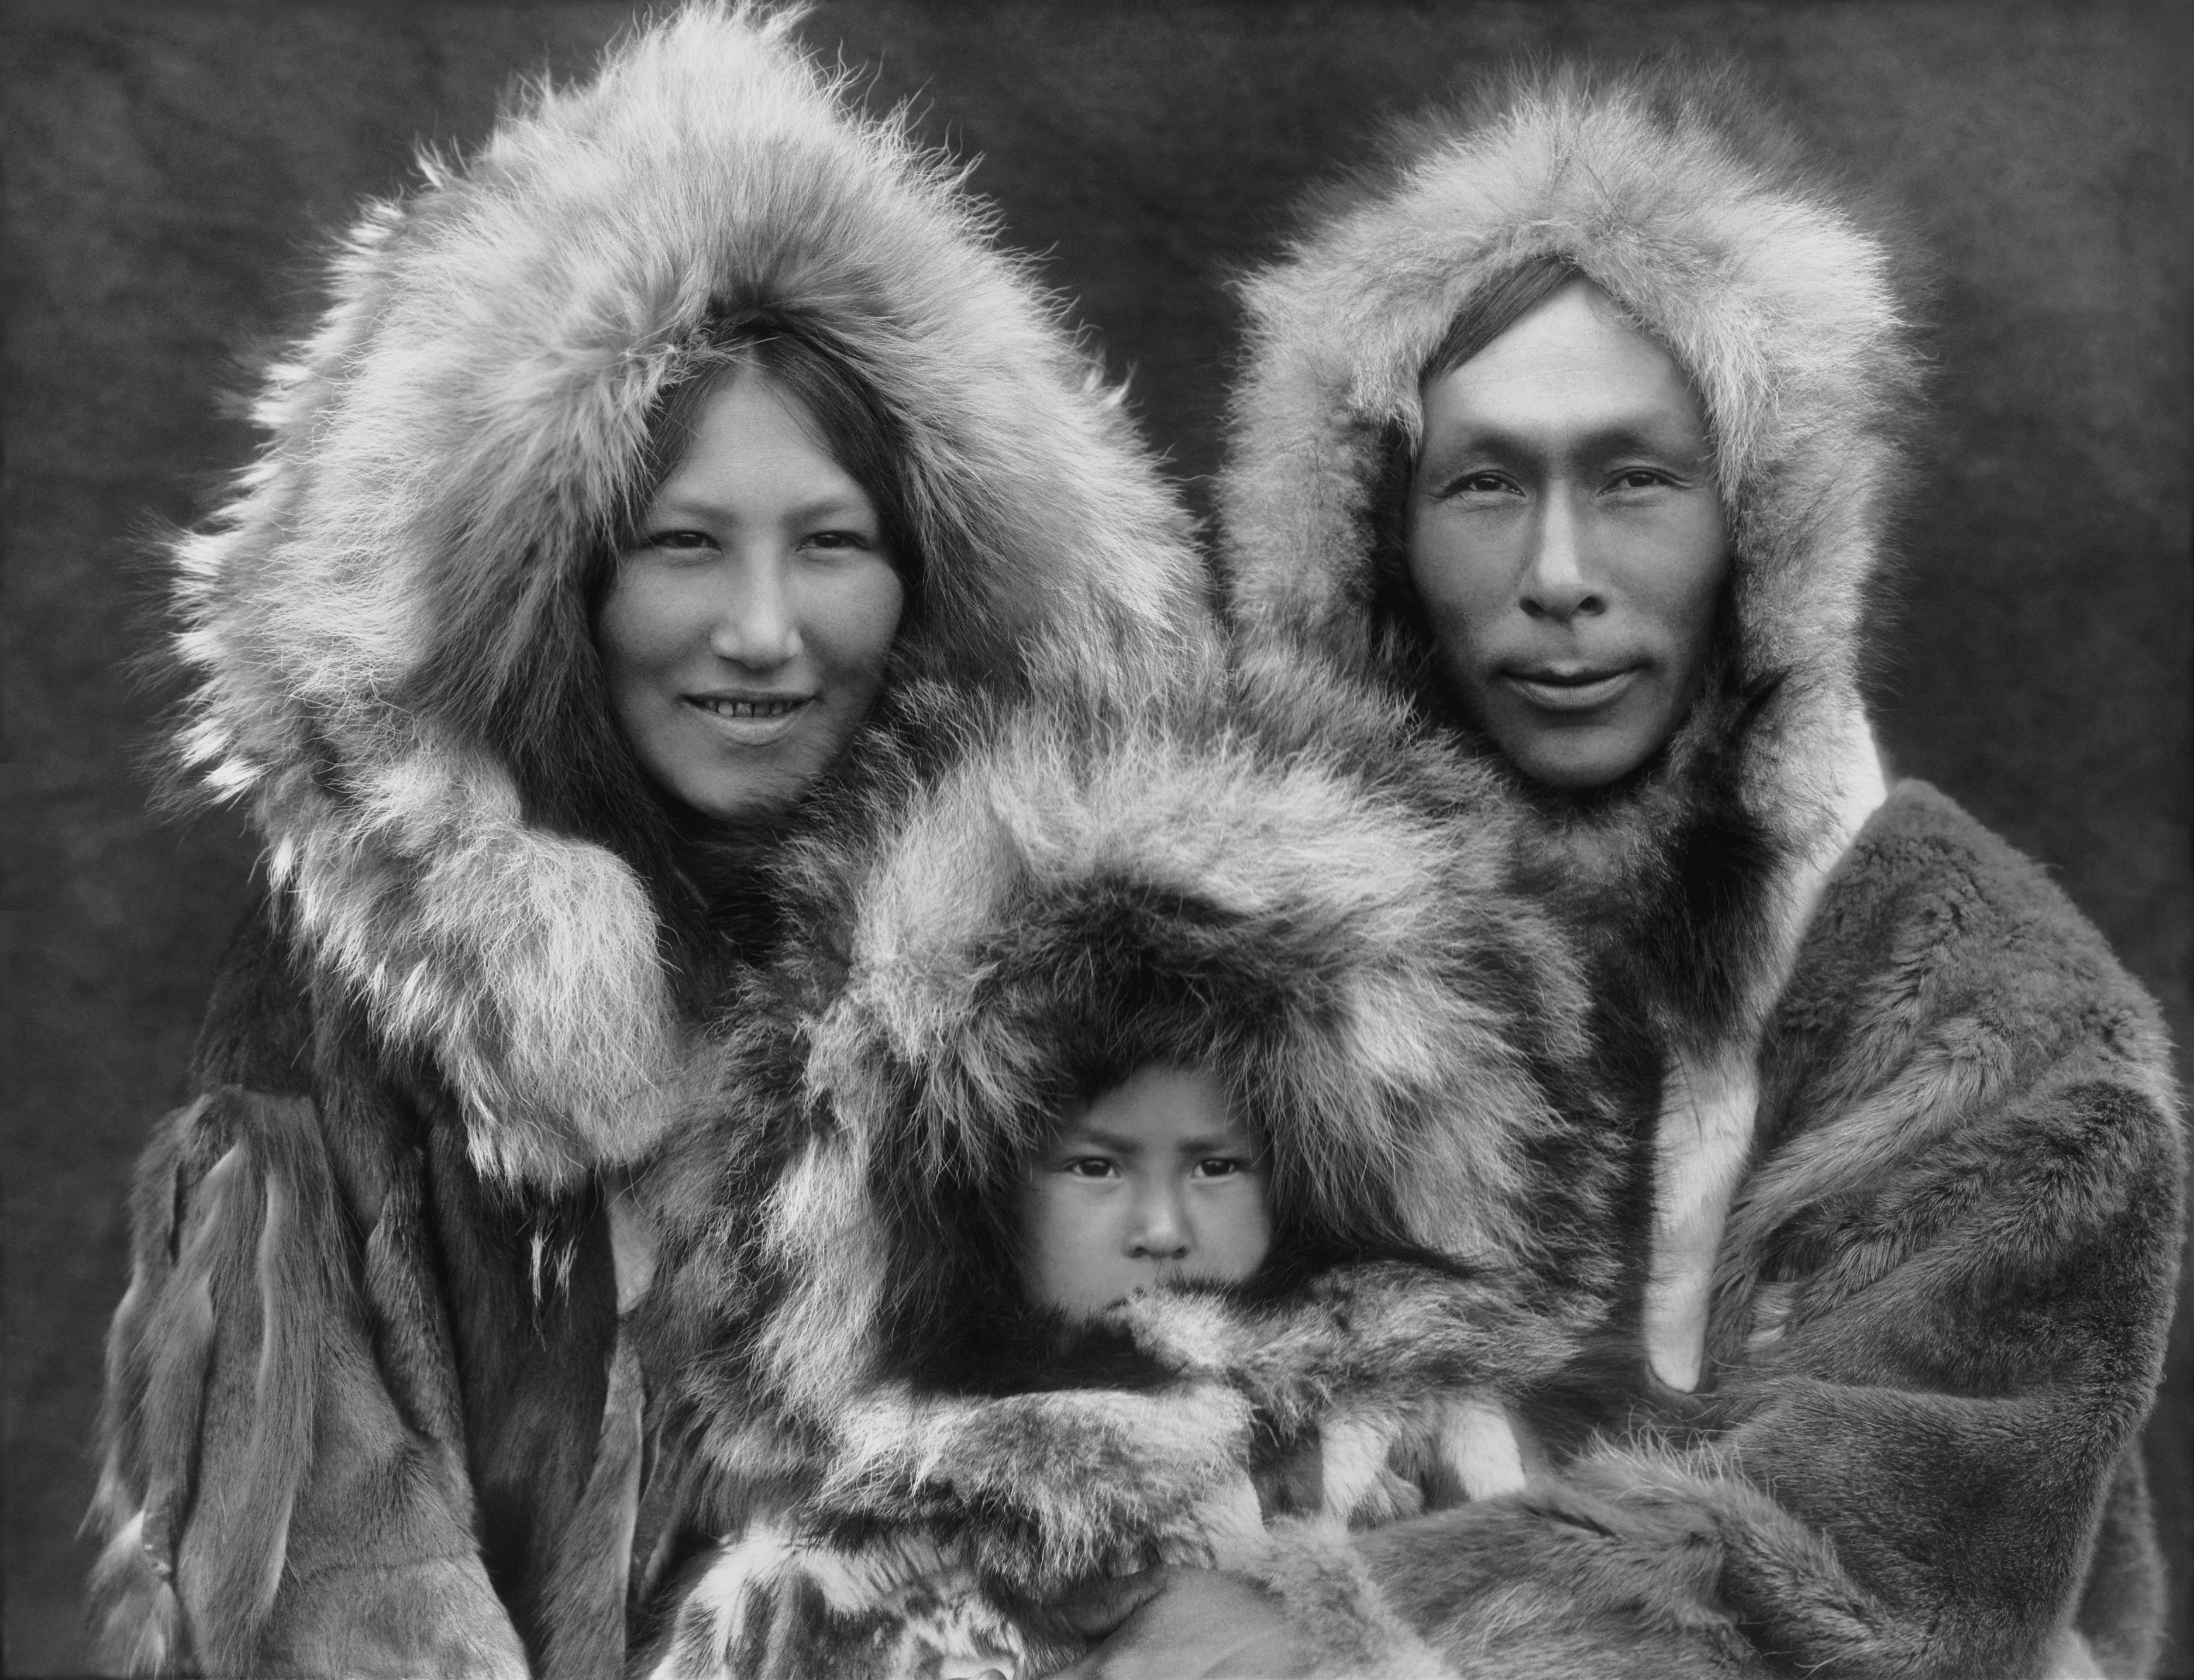 https://upload.wikimedia.org/wikipedia/commons/8/8c/Inupiat_Family_from_Noatak,_Alaska,_1929,_Edward_S._Curtis_(restored).jpg